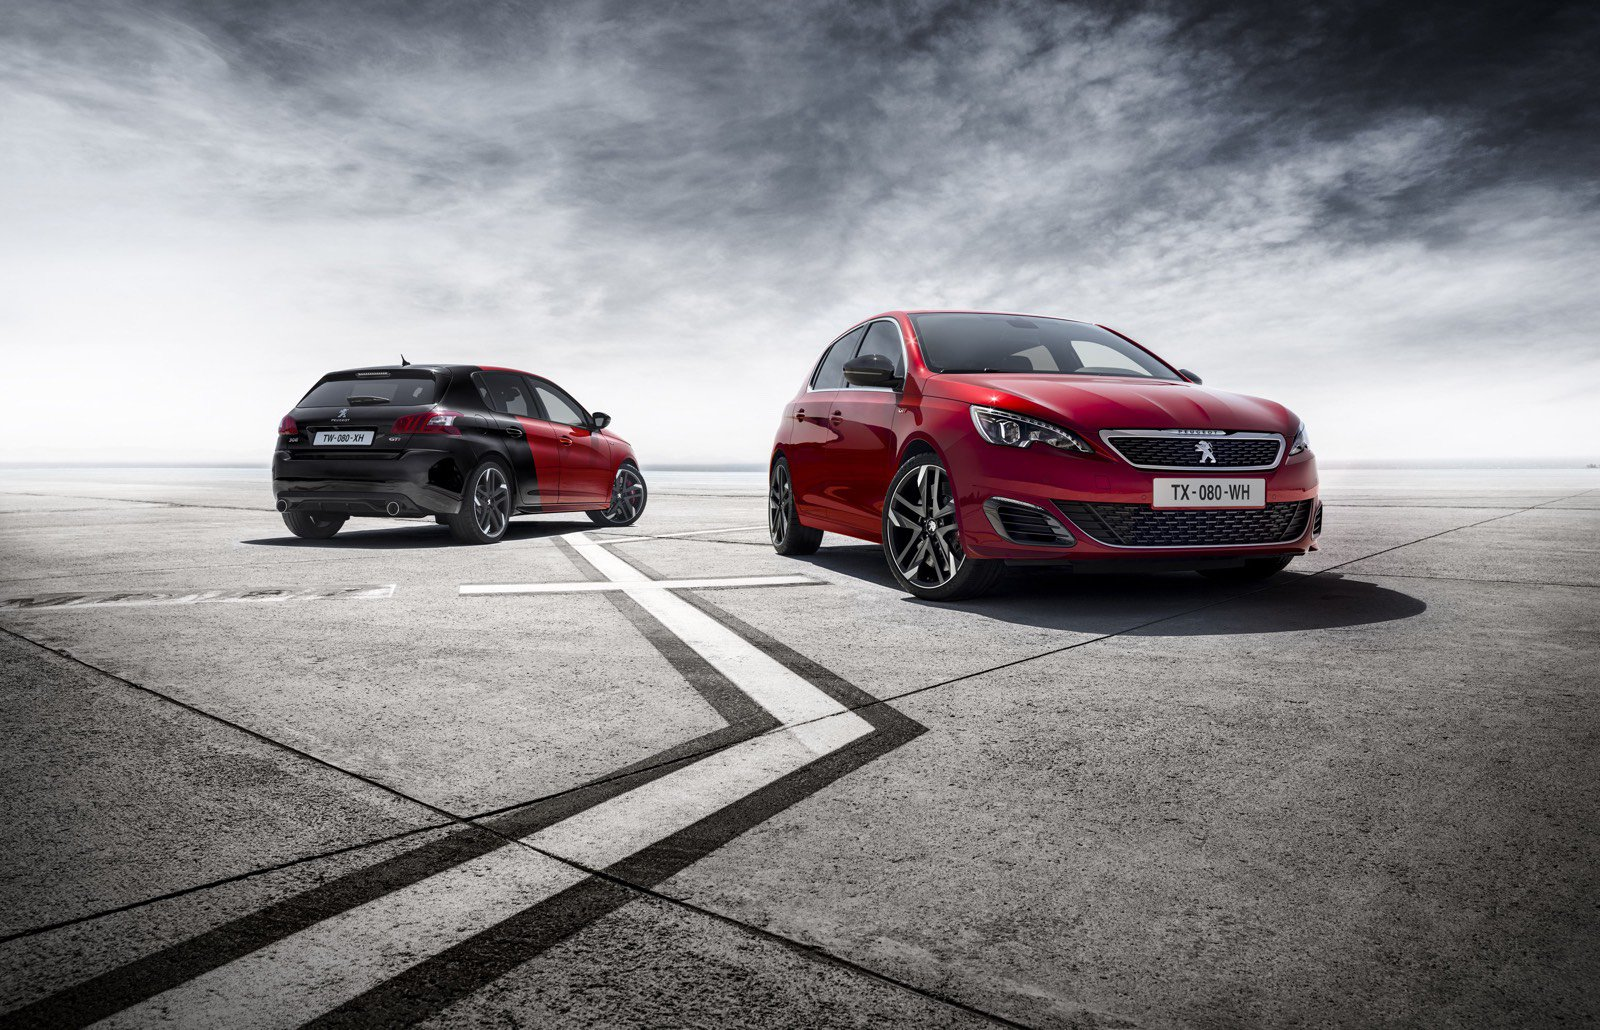 Take A Look At The Peugeot 308 GTi 4